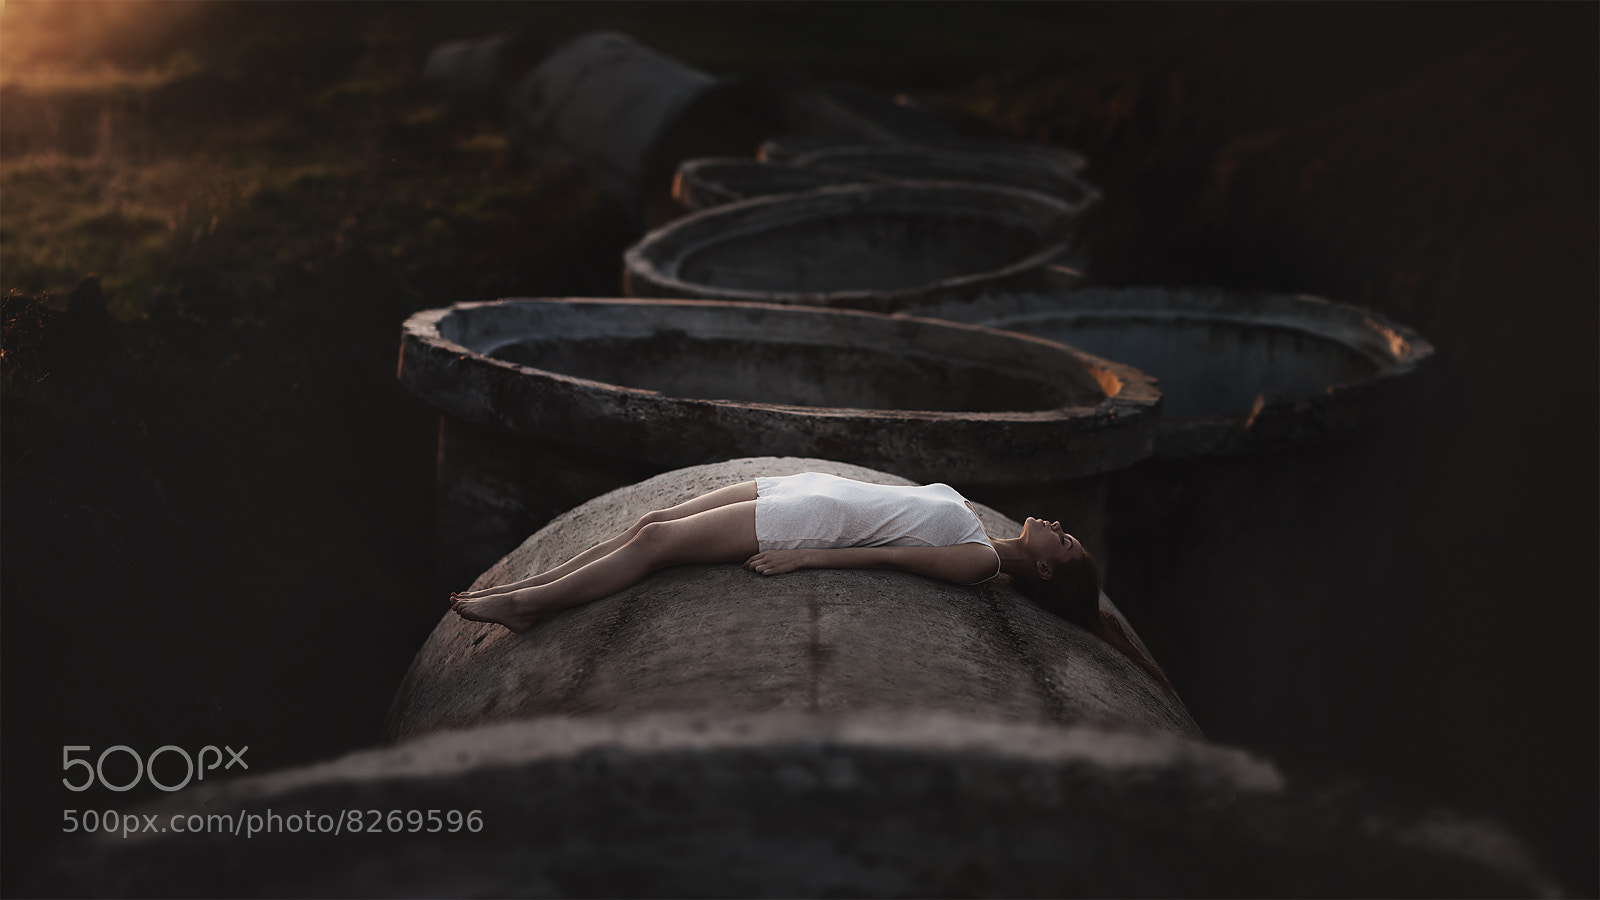 Photograph equilibrium by Kirill I on 500px